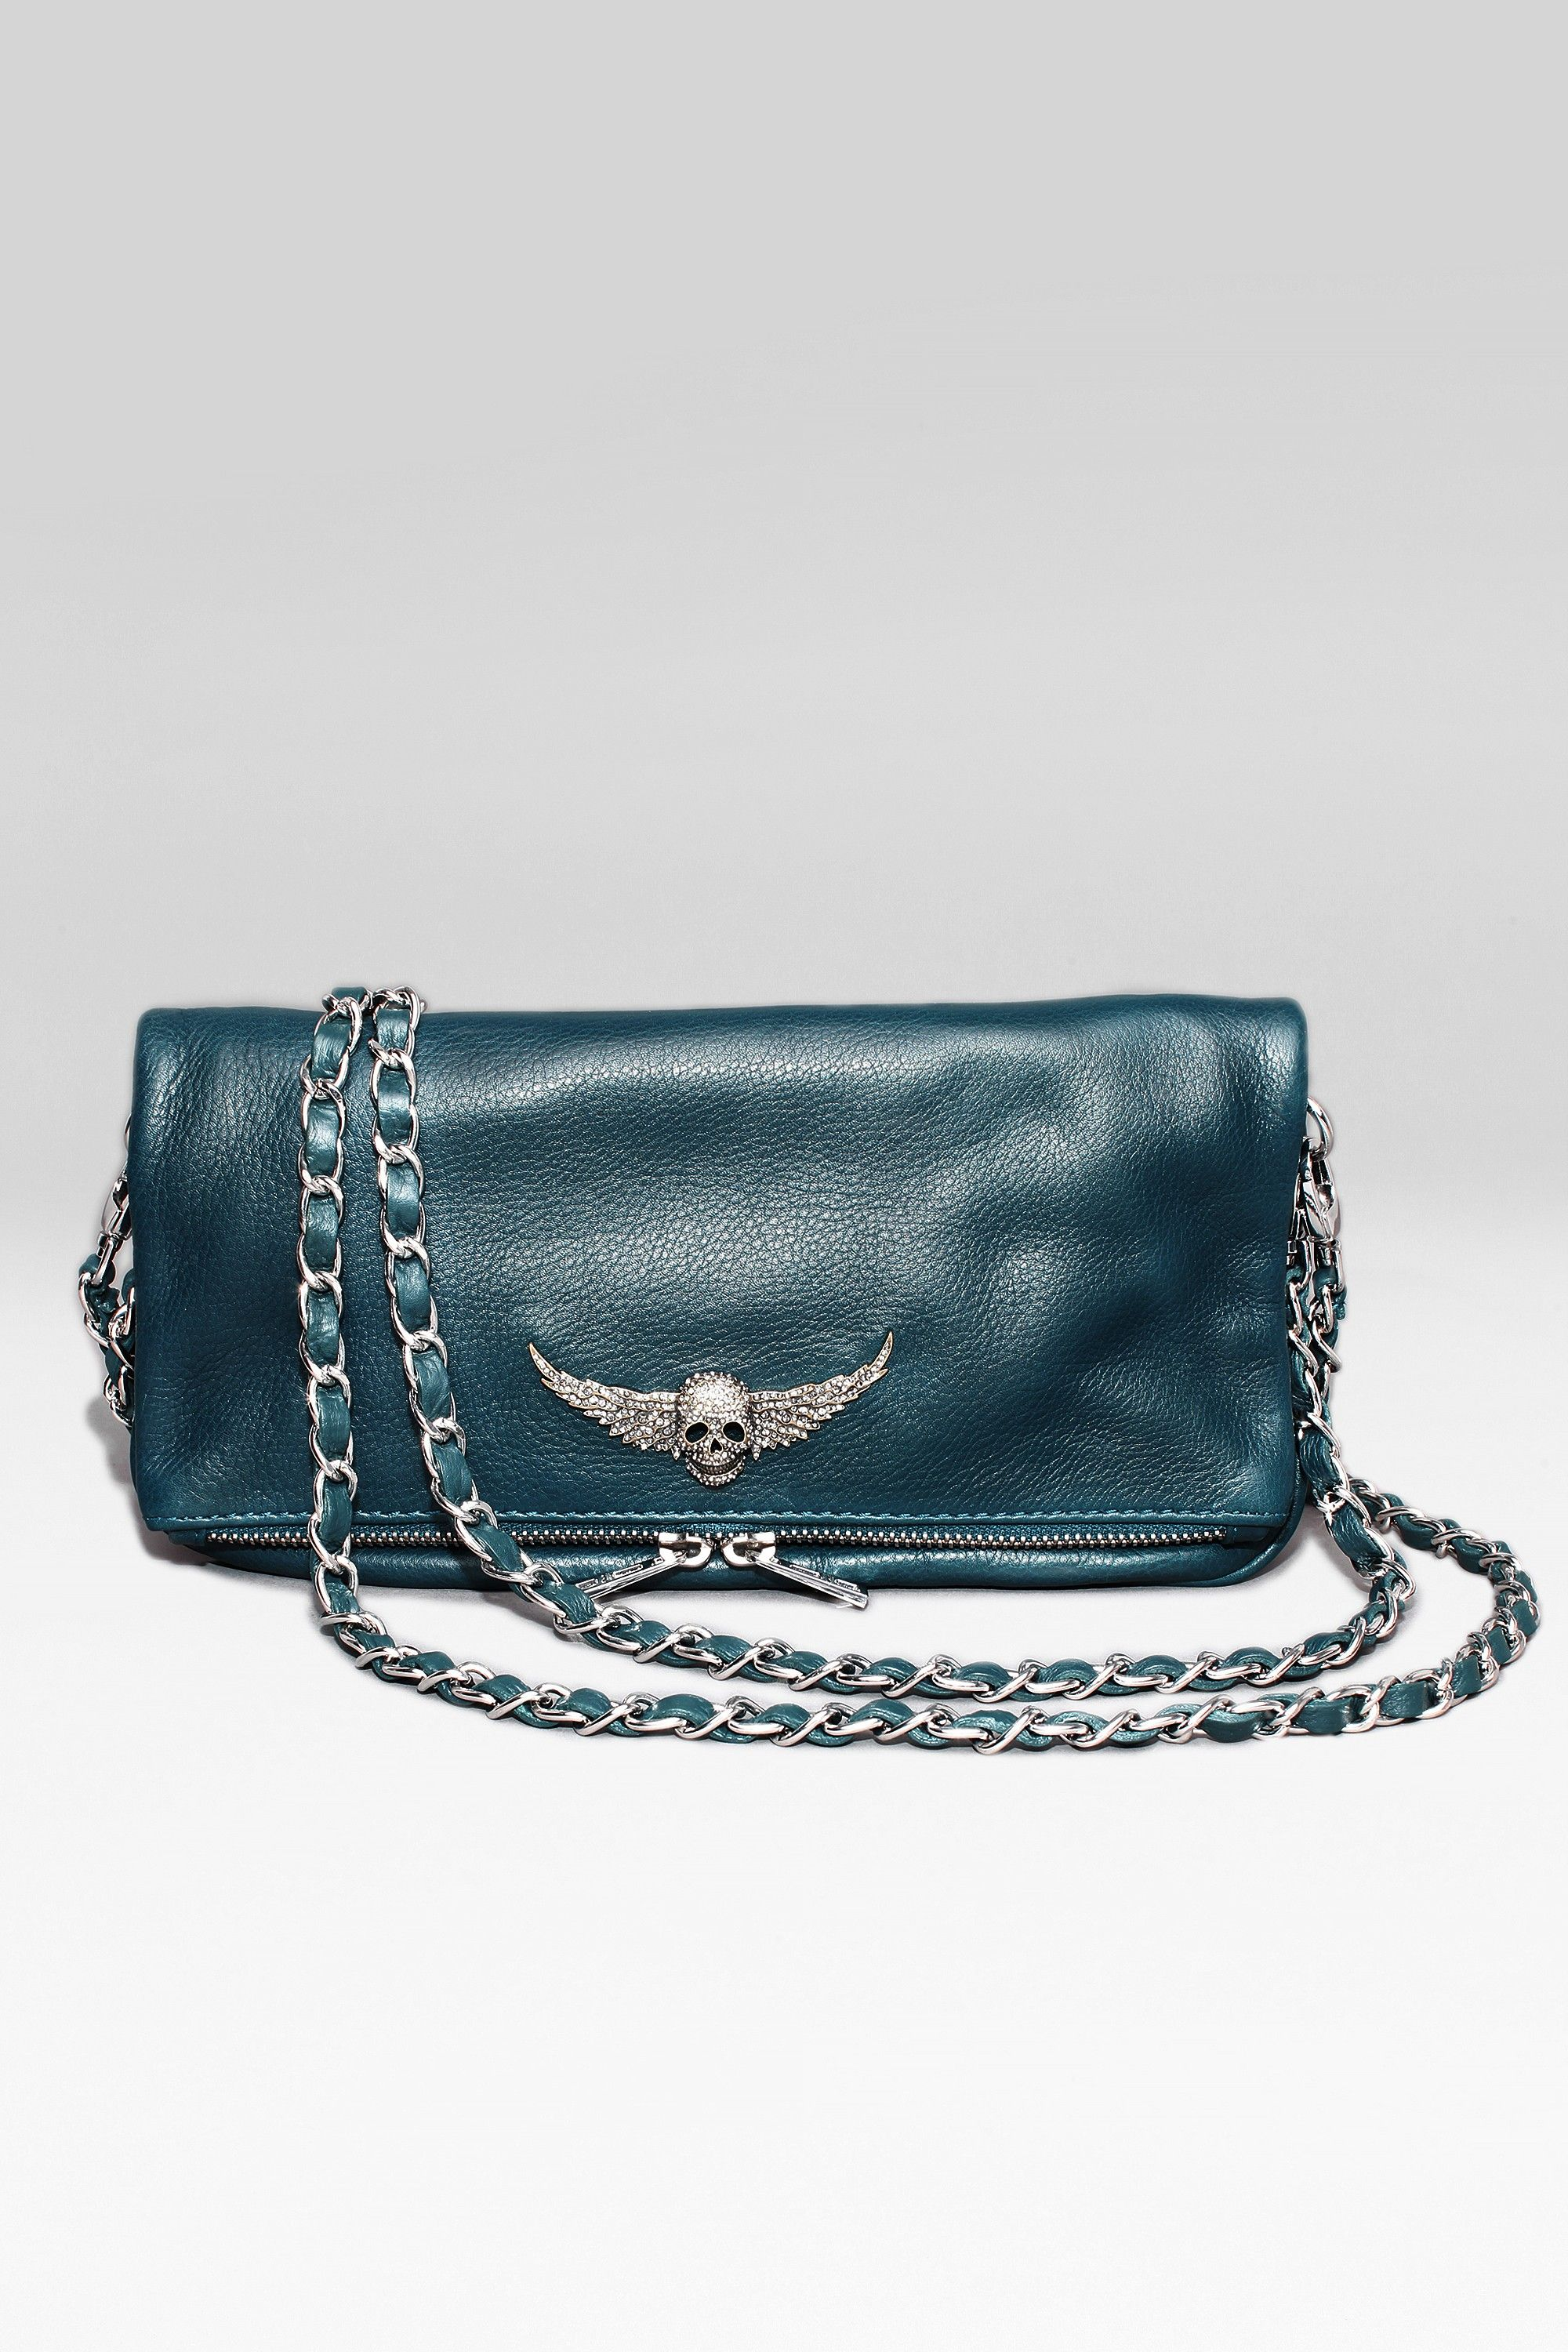 Rock Clutch Bags Leather Goodies Clutch